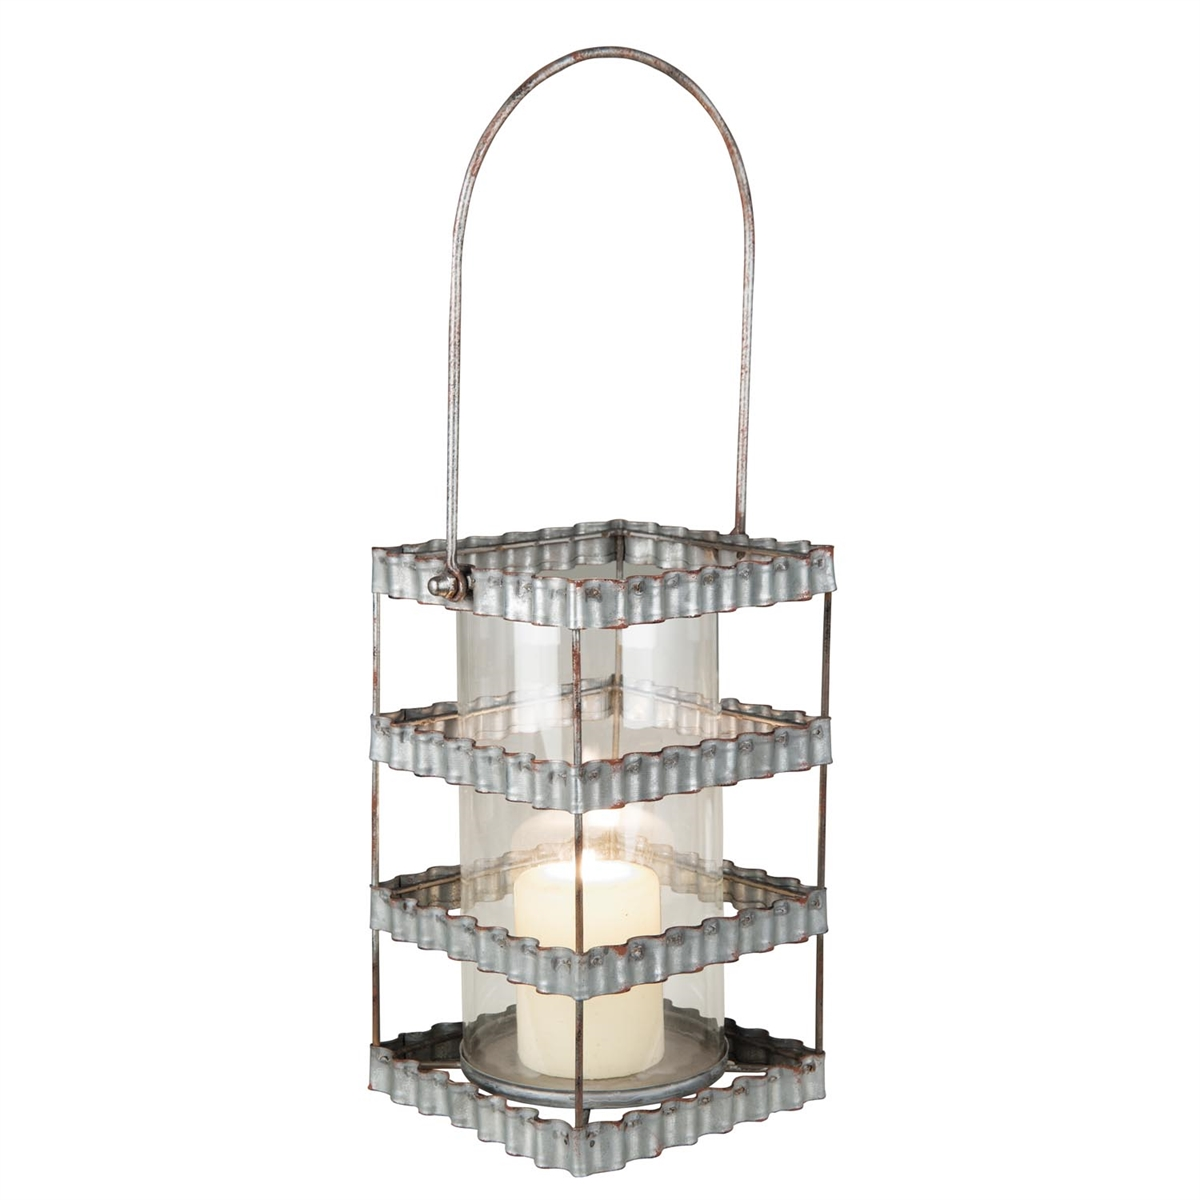 Galvanized Pillar Metal Candle Holder| Plum & Post